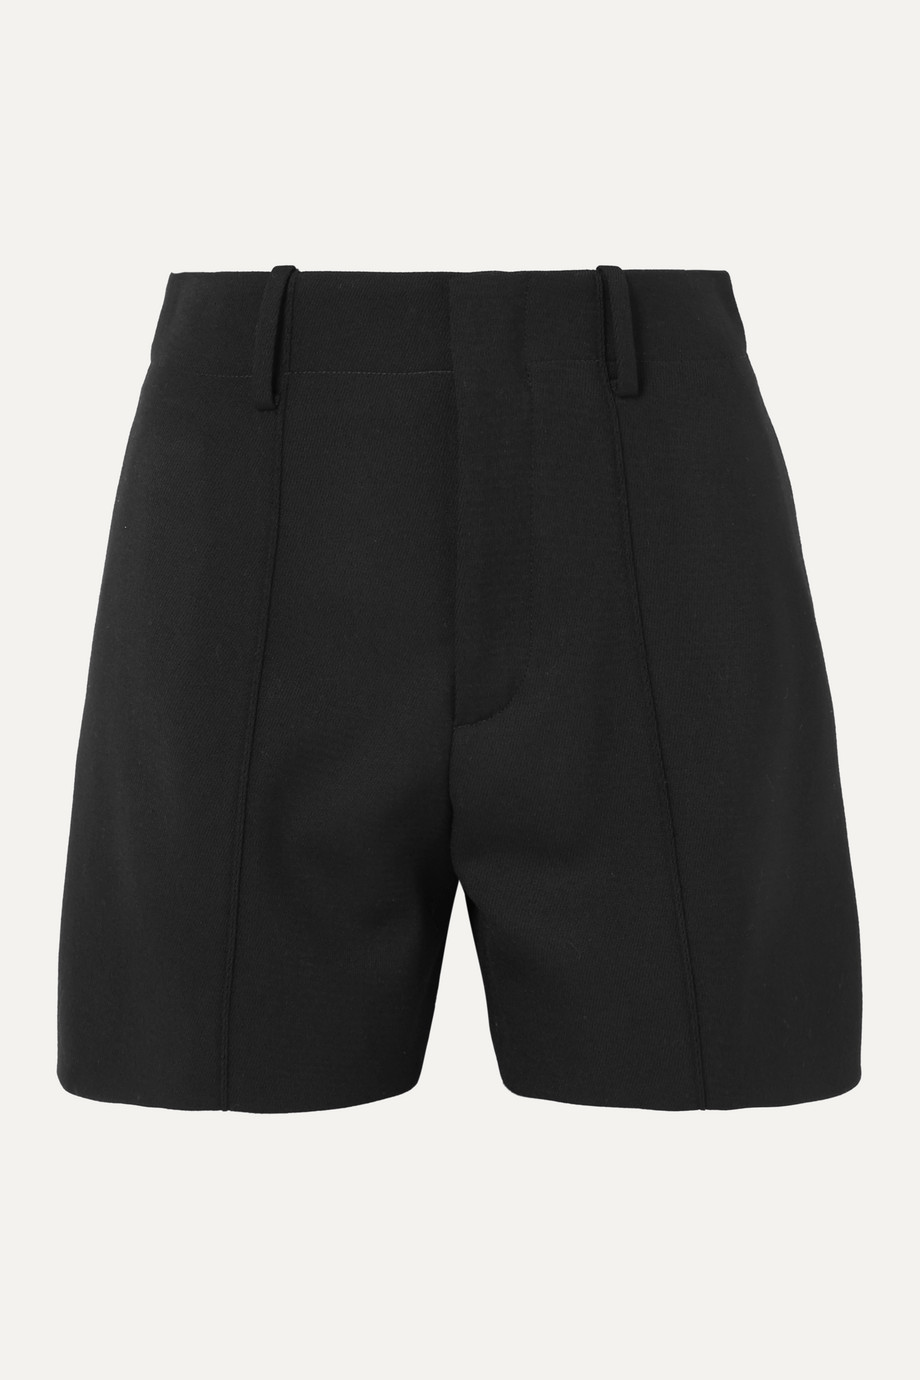 Chloé Wool-blend twill shorts